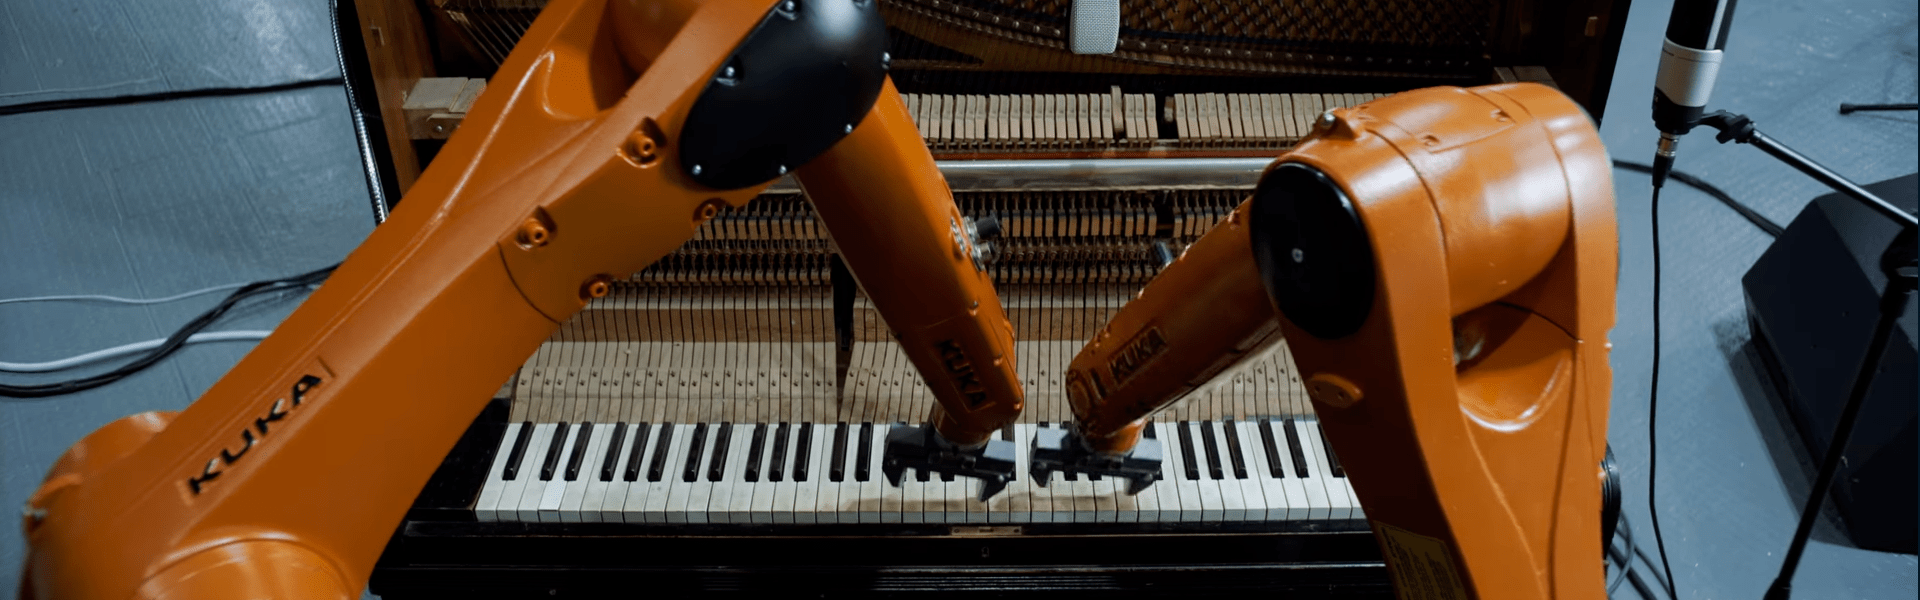 Estos robots son integrantes de una banda musical- Nation